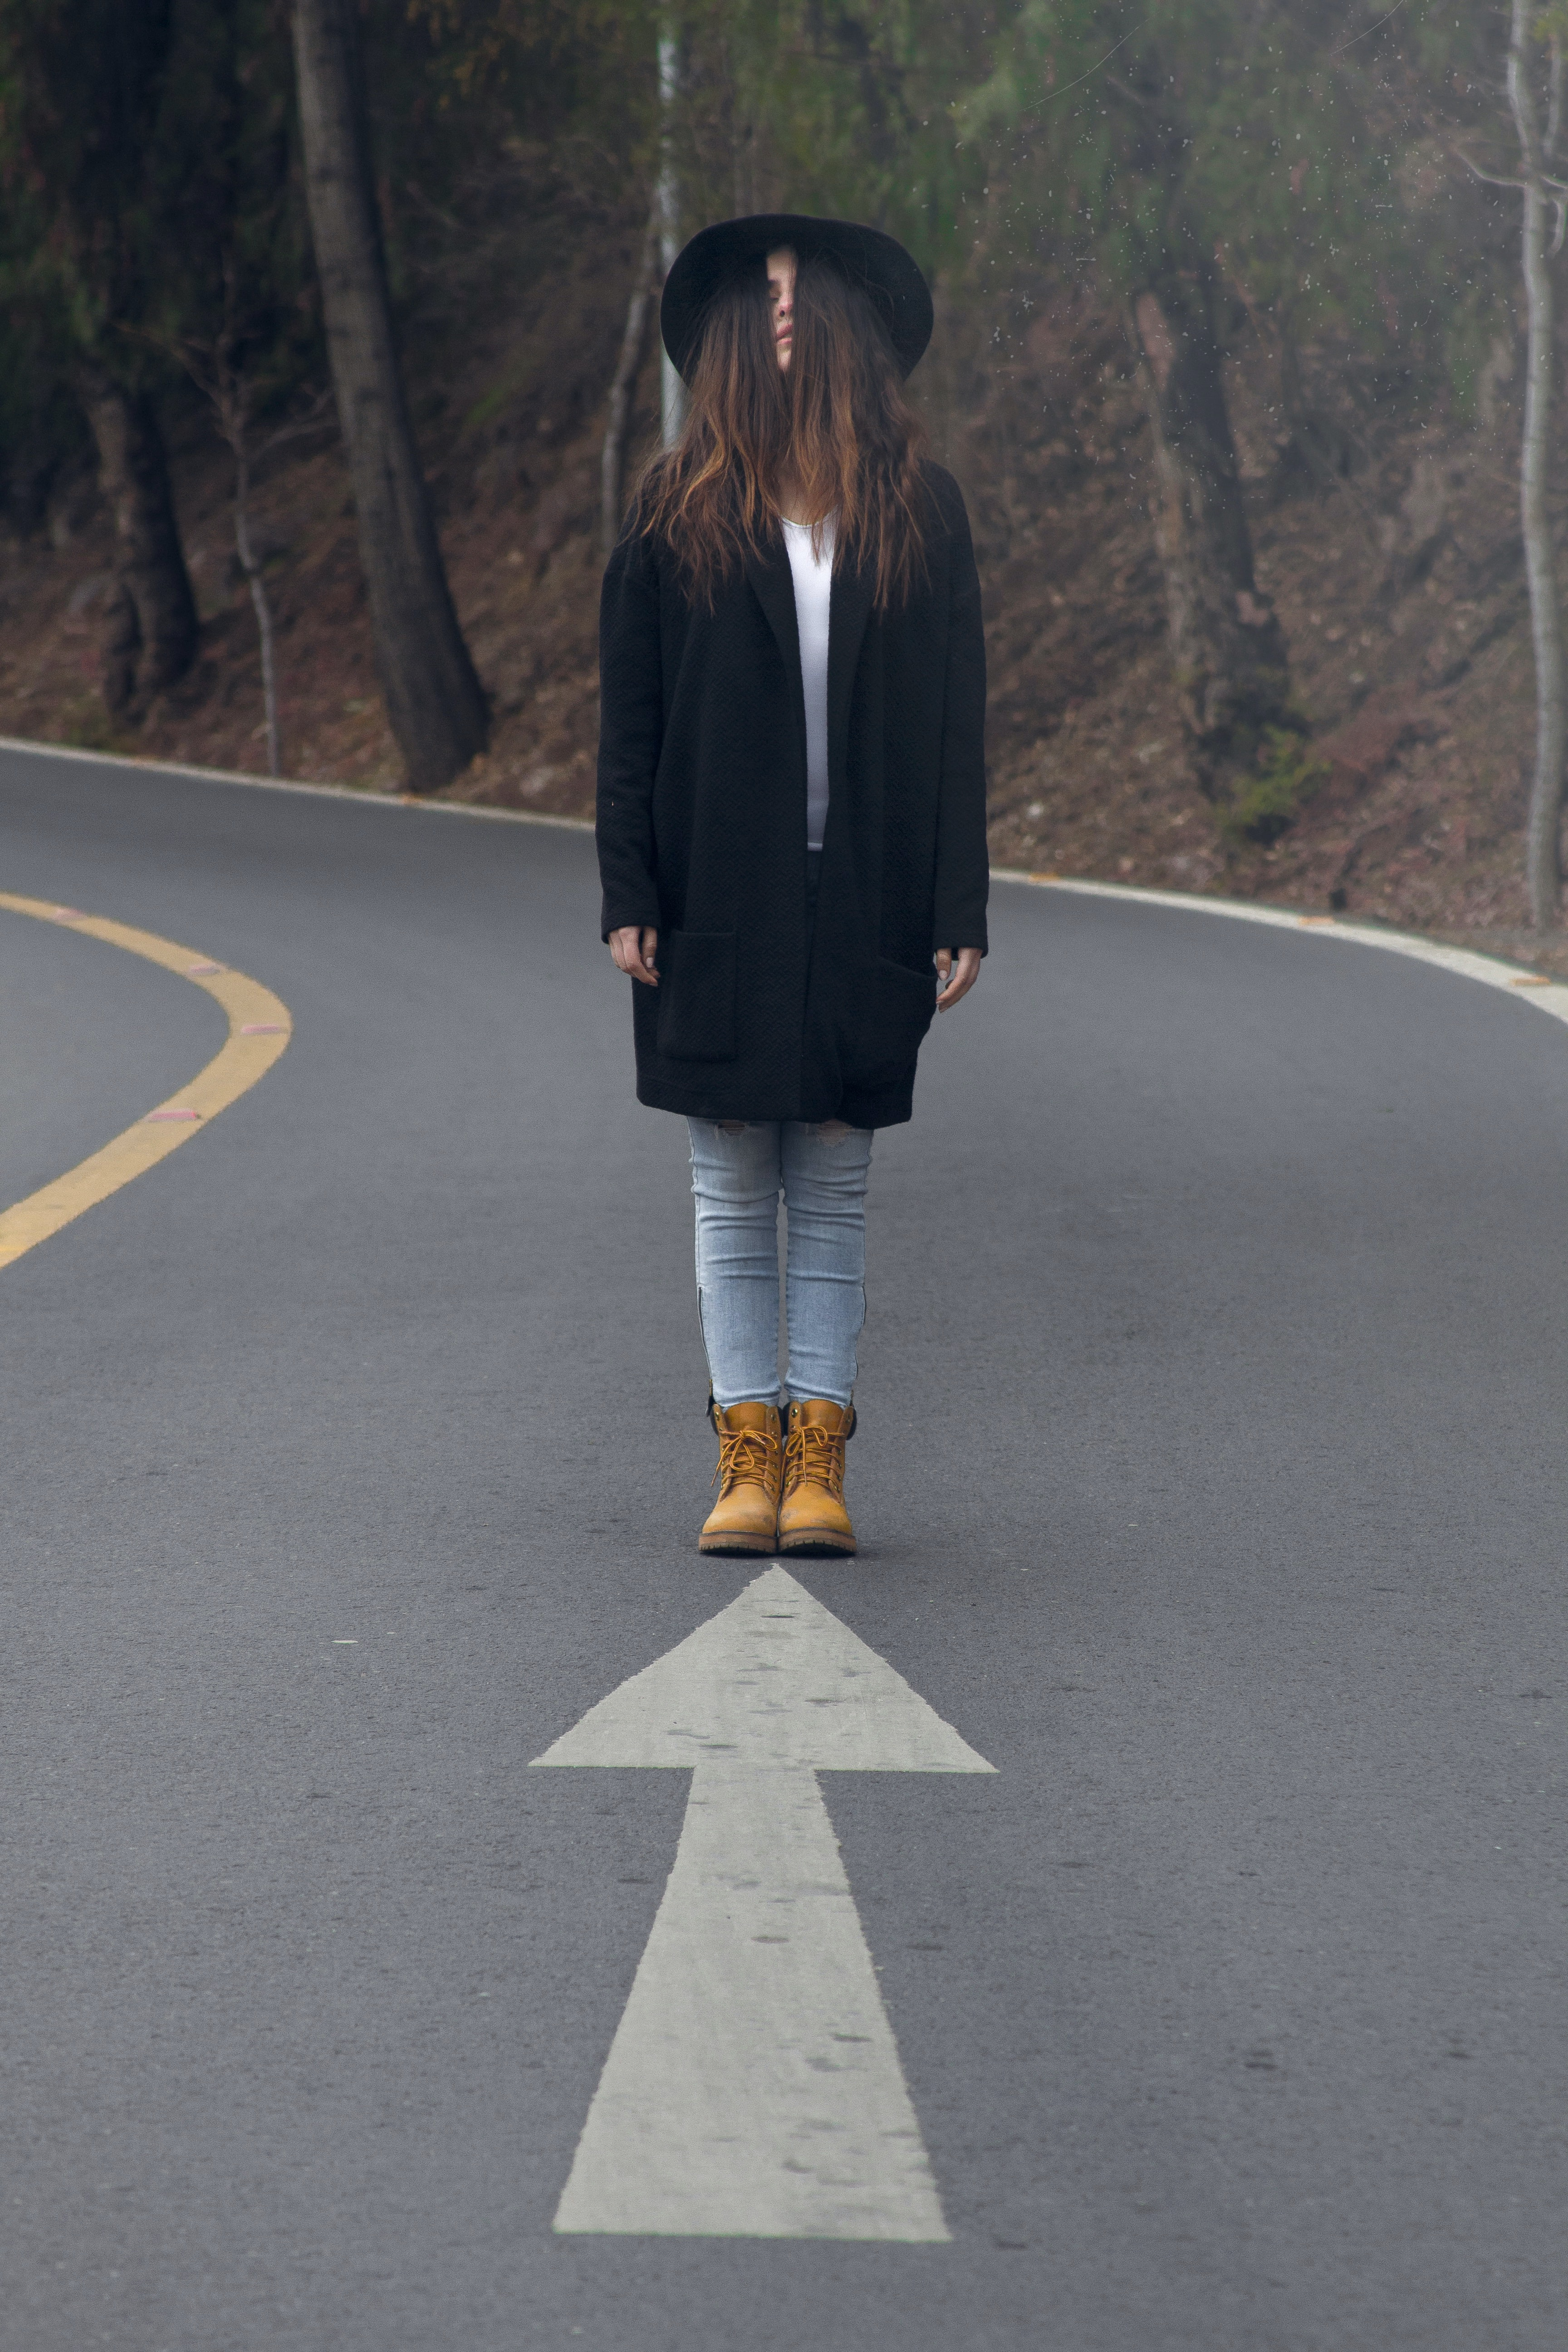 A woman with hair covering her face stands on a road, a painted arrow facing her